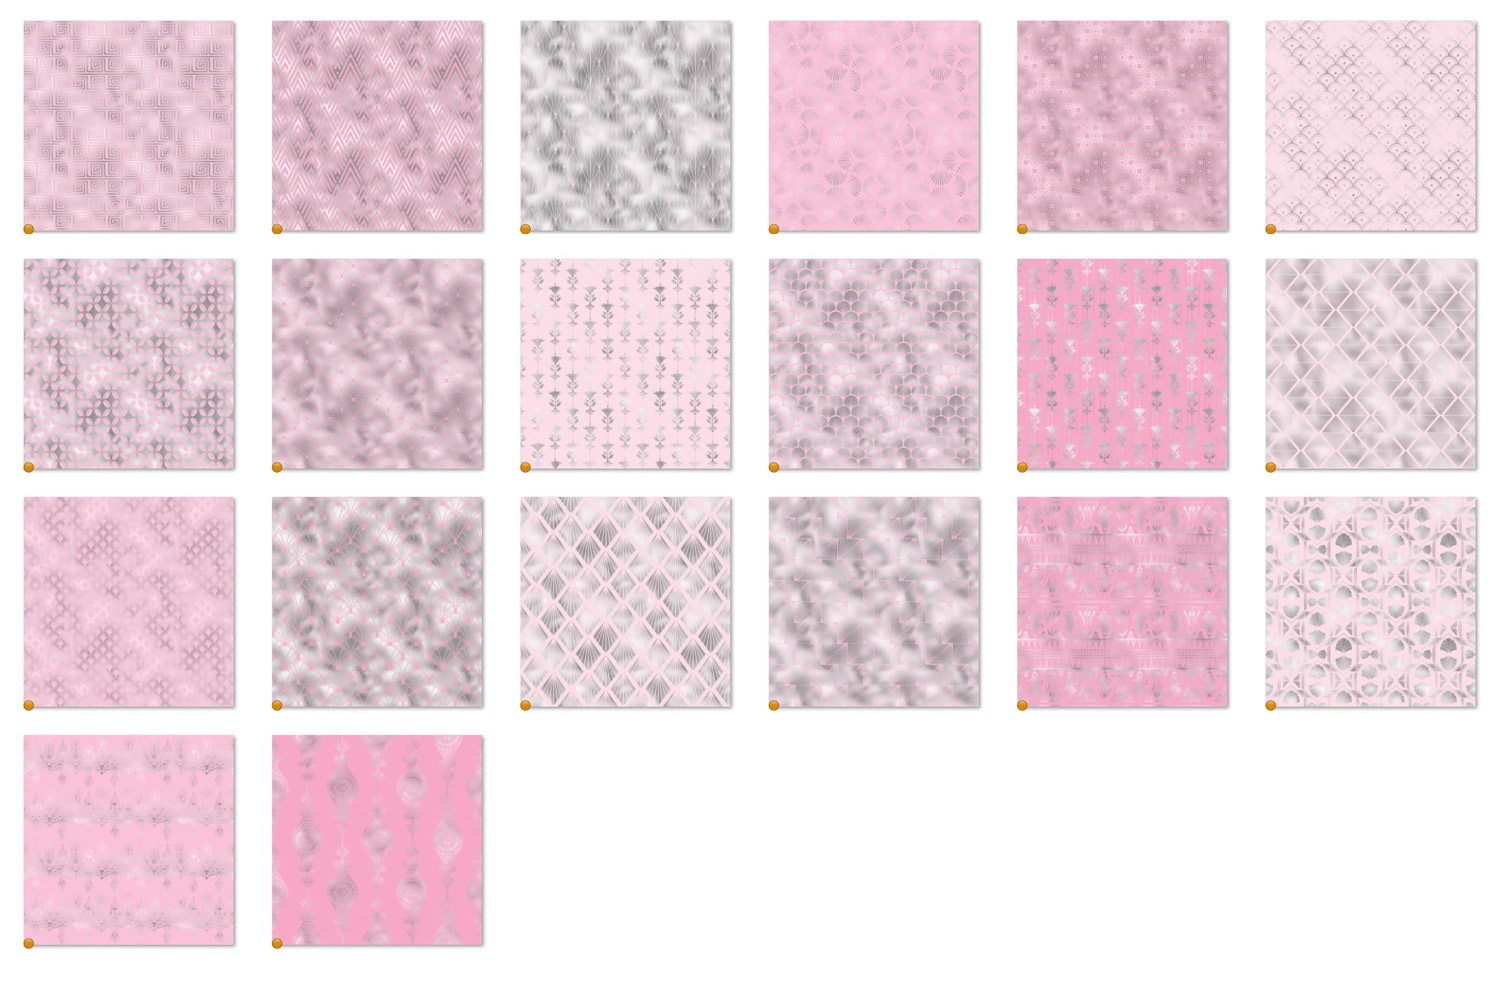 Pink and Silver Art Deco Digital Paper example image 5